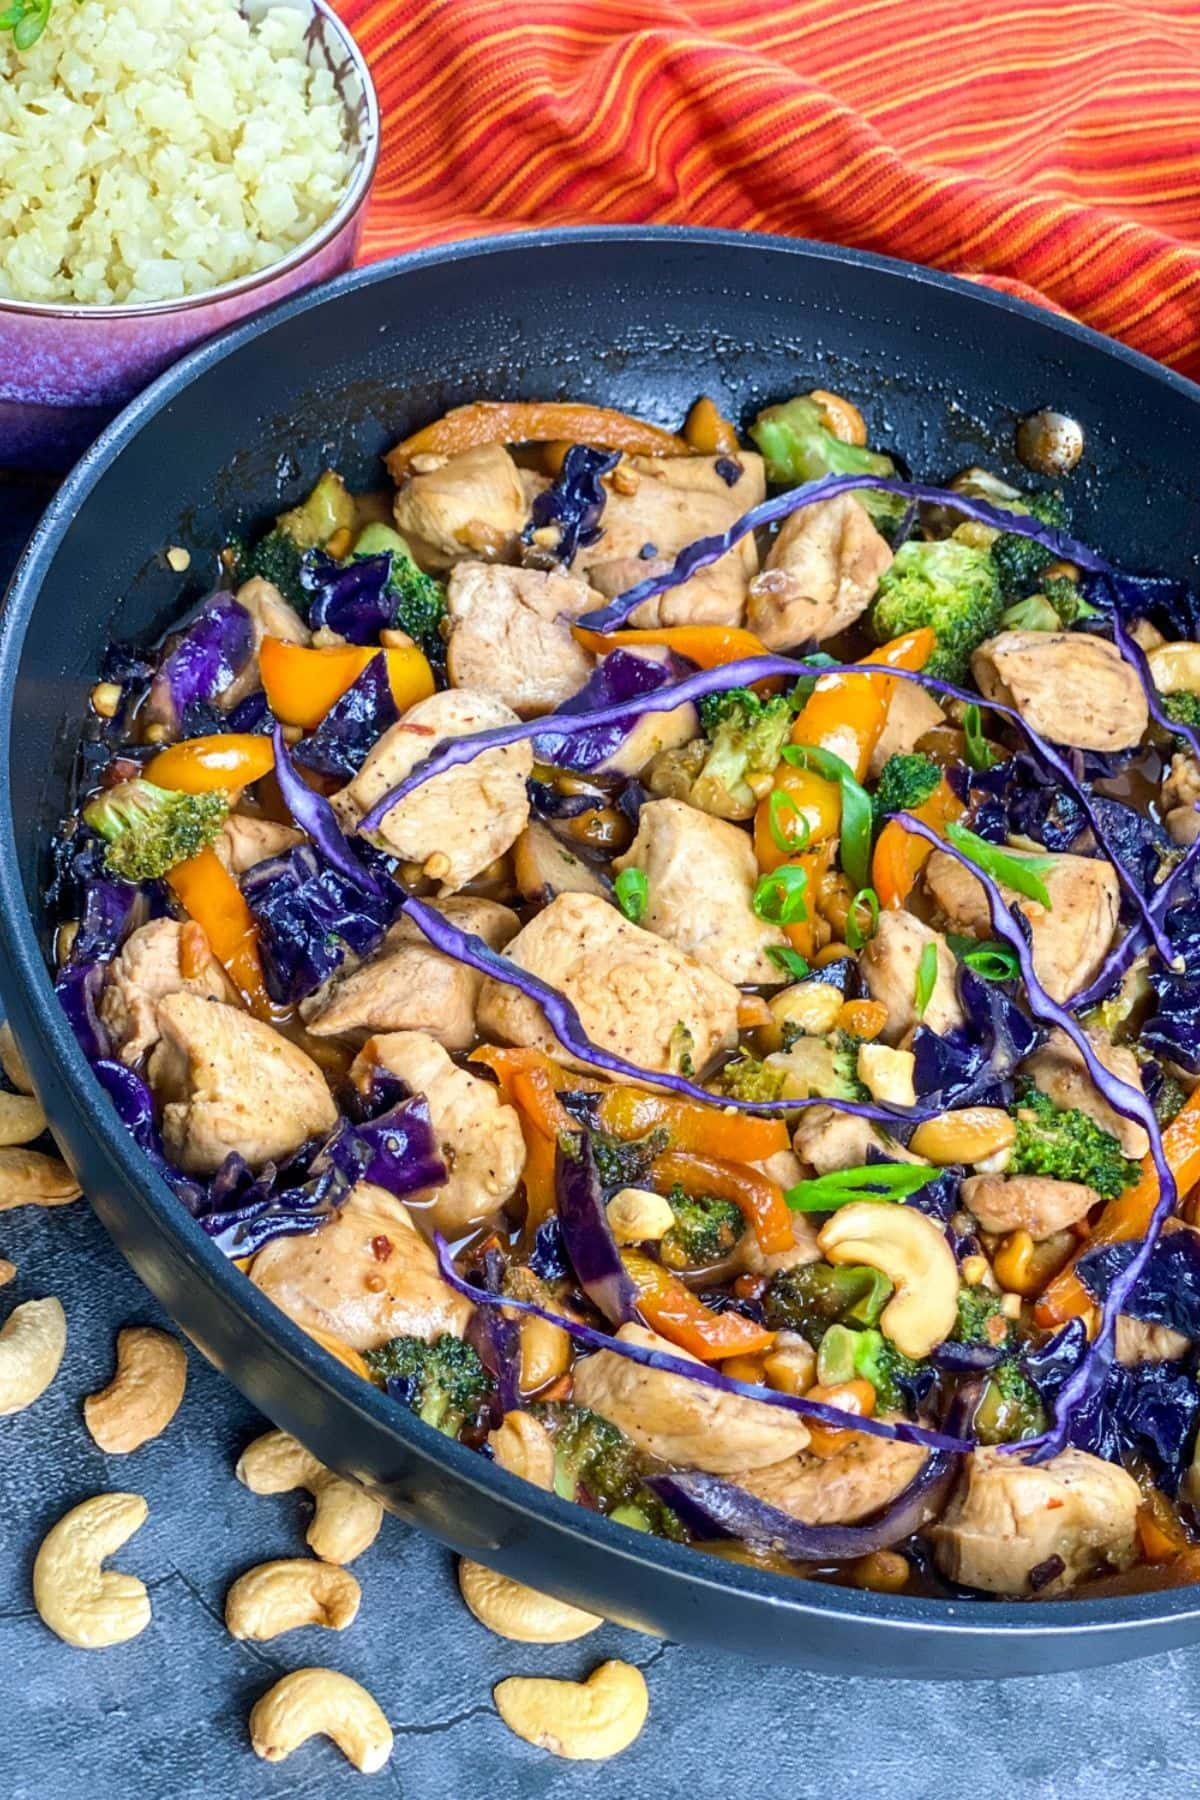 Low carb Chicken & Red Cabbage